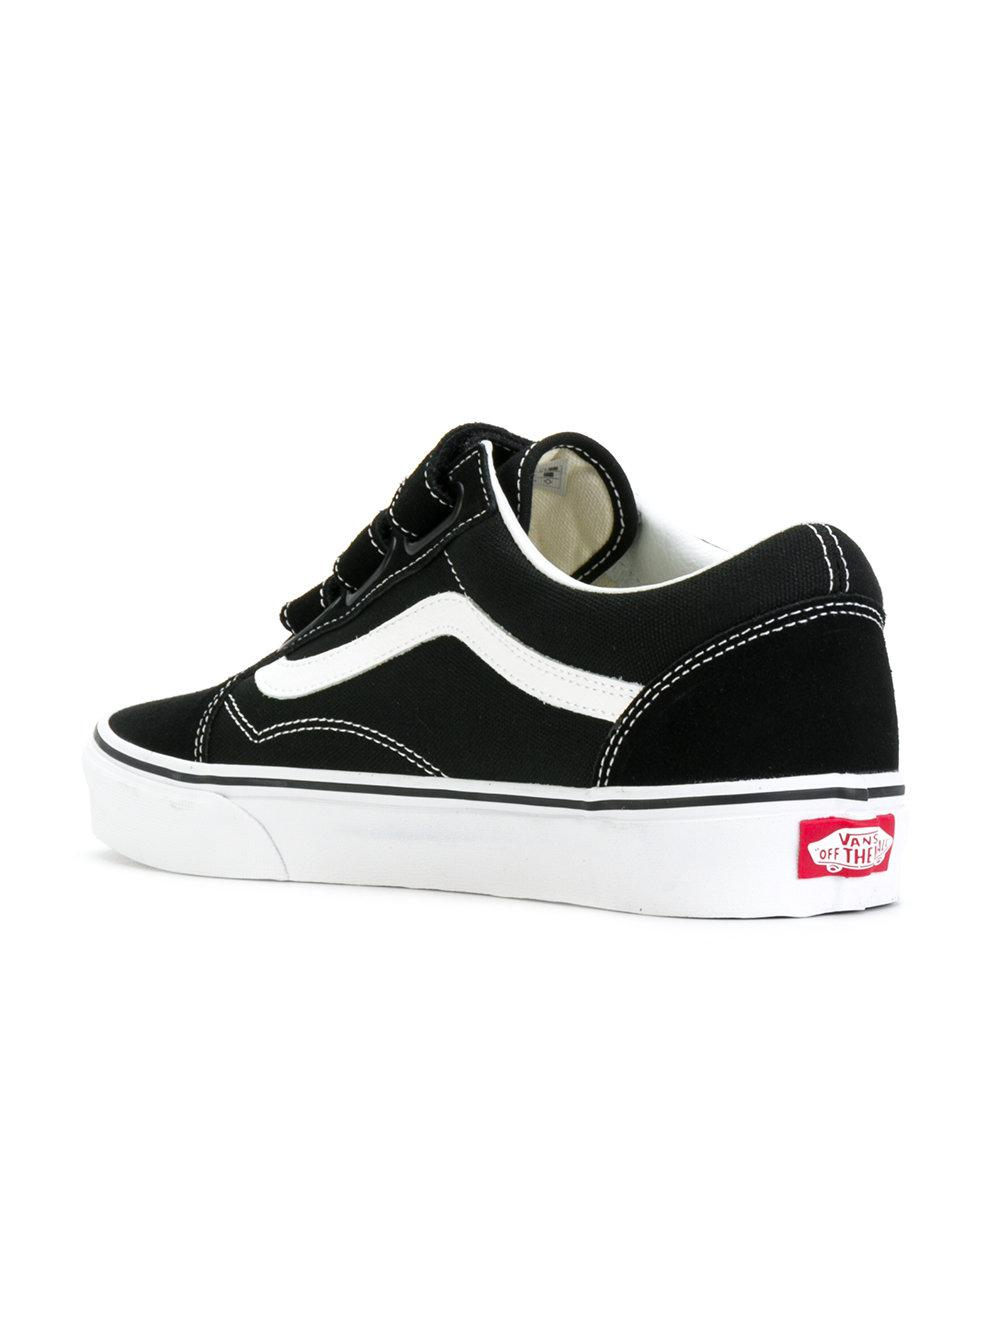 a45a9129b544 Gallery. Previously sold at  Farfetch · Men s Vans Old Skool ...